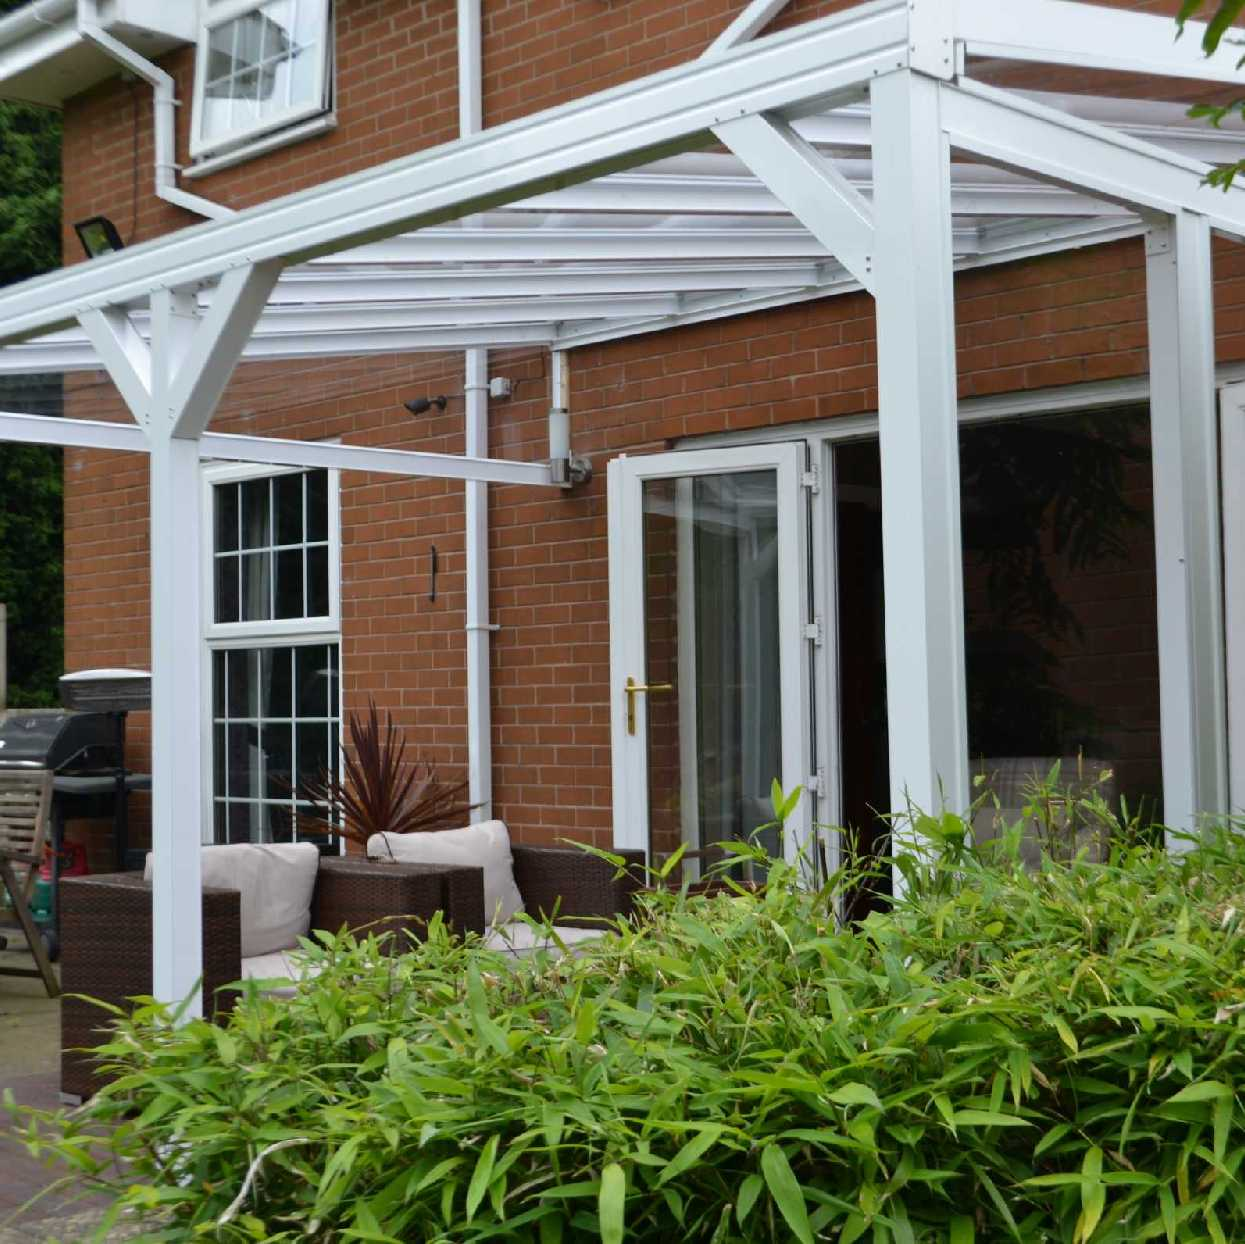 Omega Smart White Lean-To Canopy UNGLAZED for 6mm Glazing - 4.2m (W) x 2.0m (P), (3) Supporting Posts from Omega Build